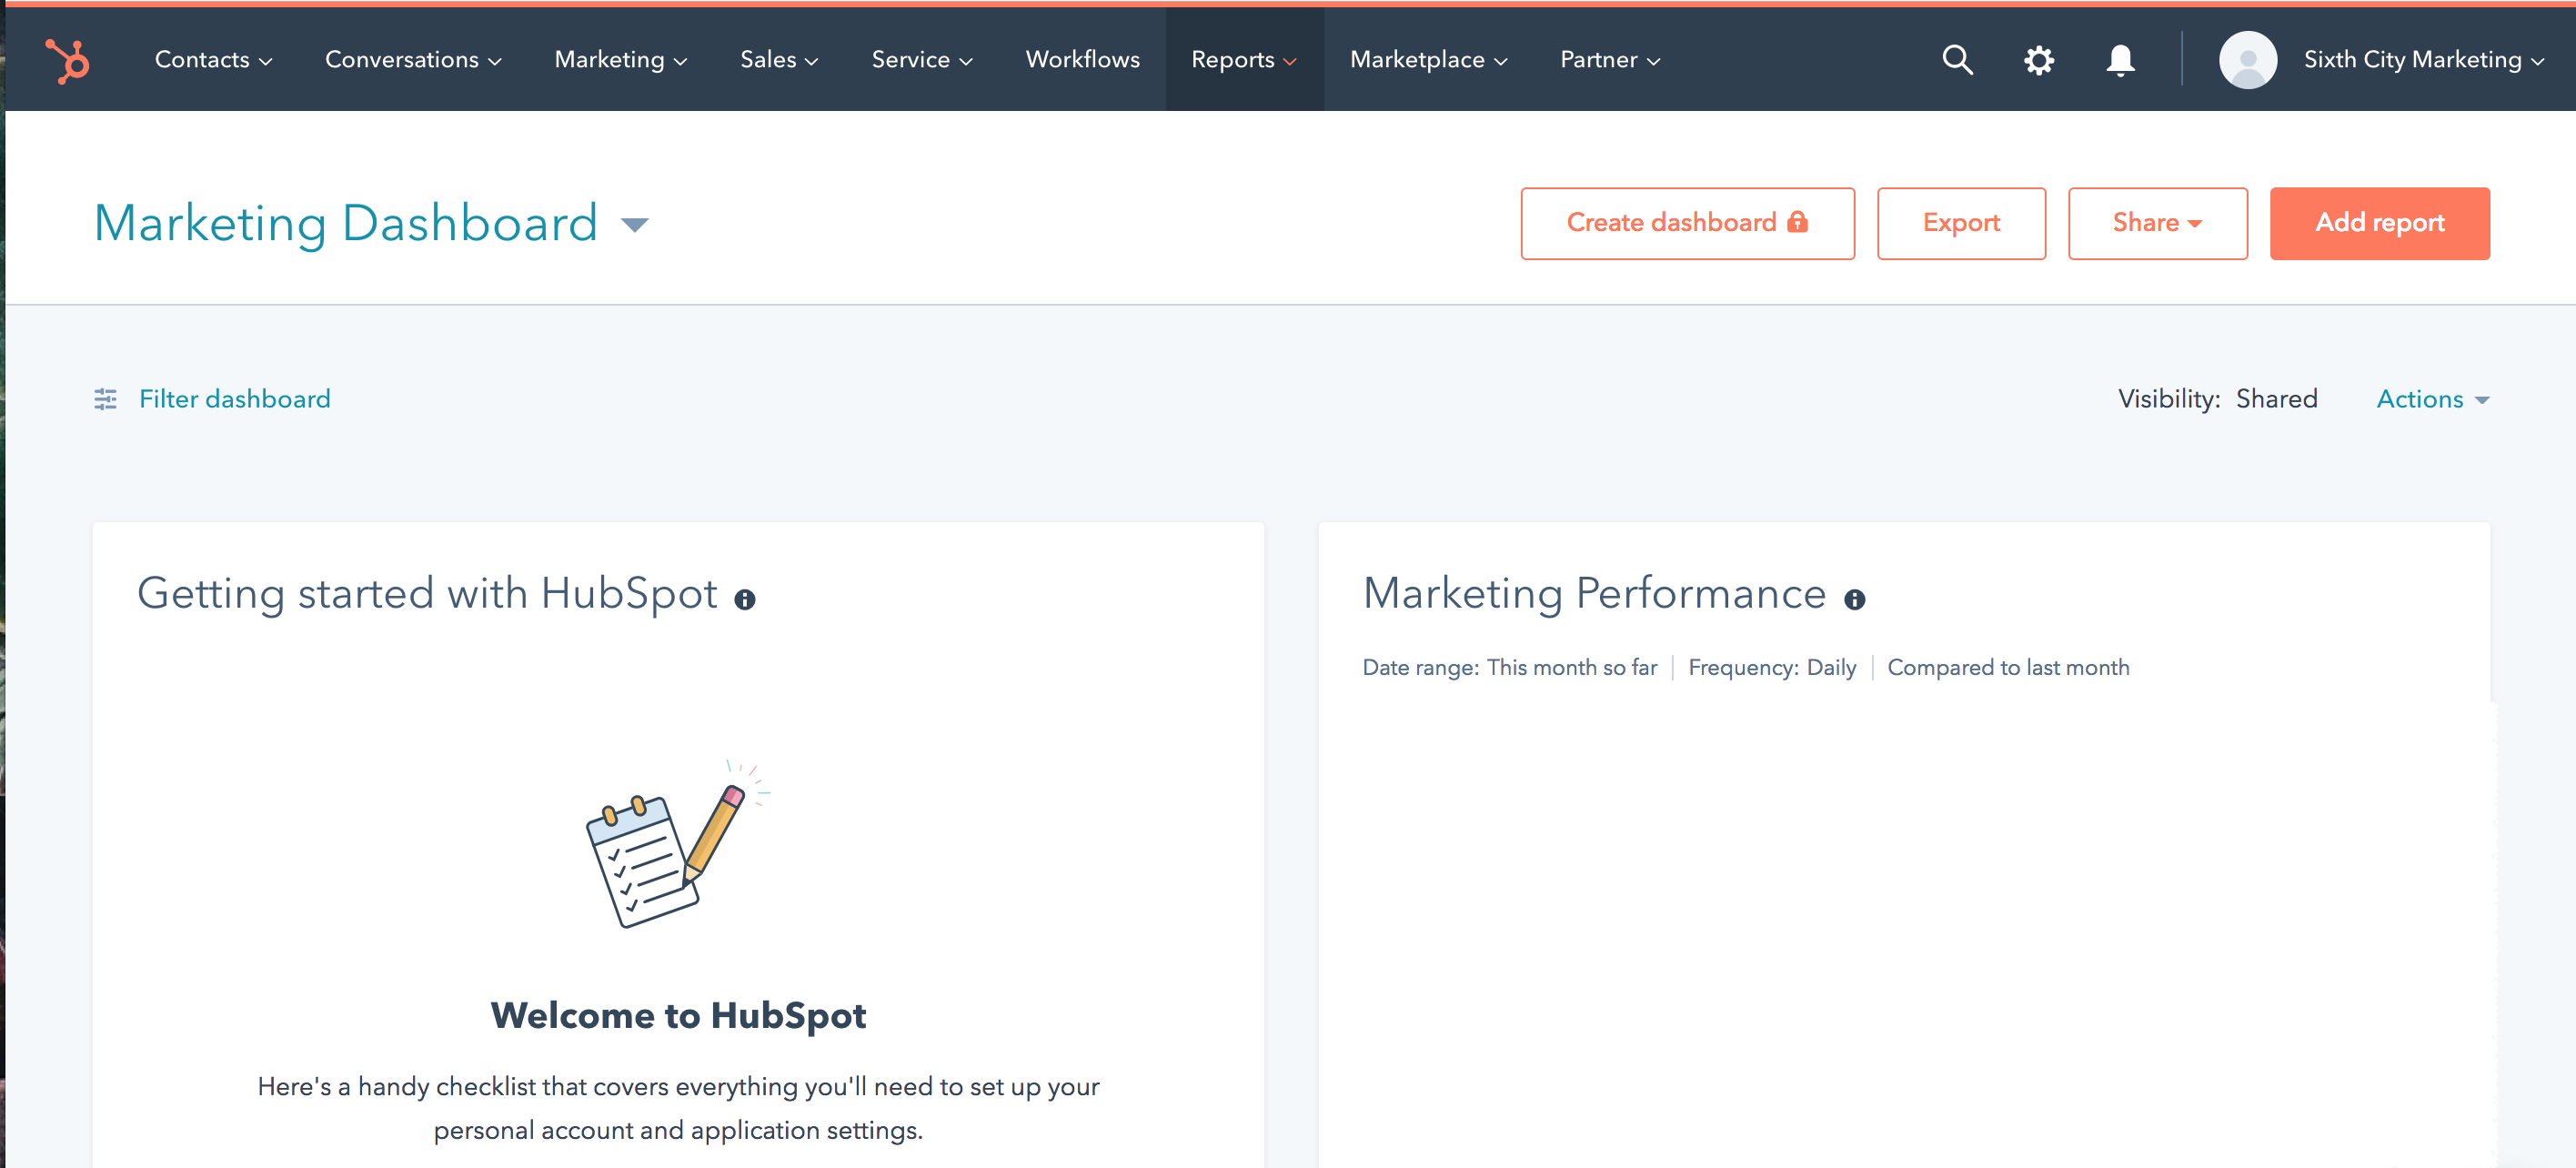 Sixth City is a Hubspot partner